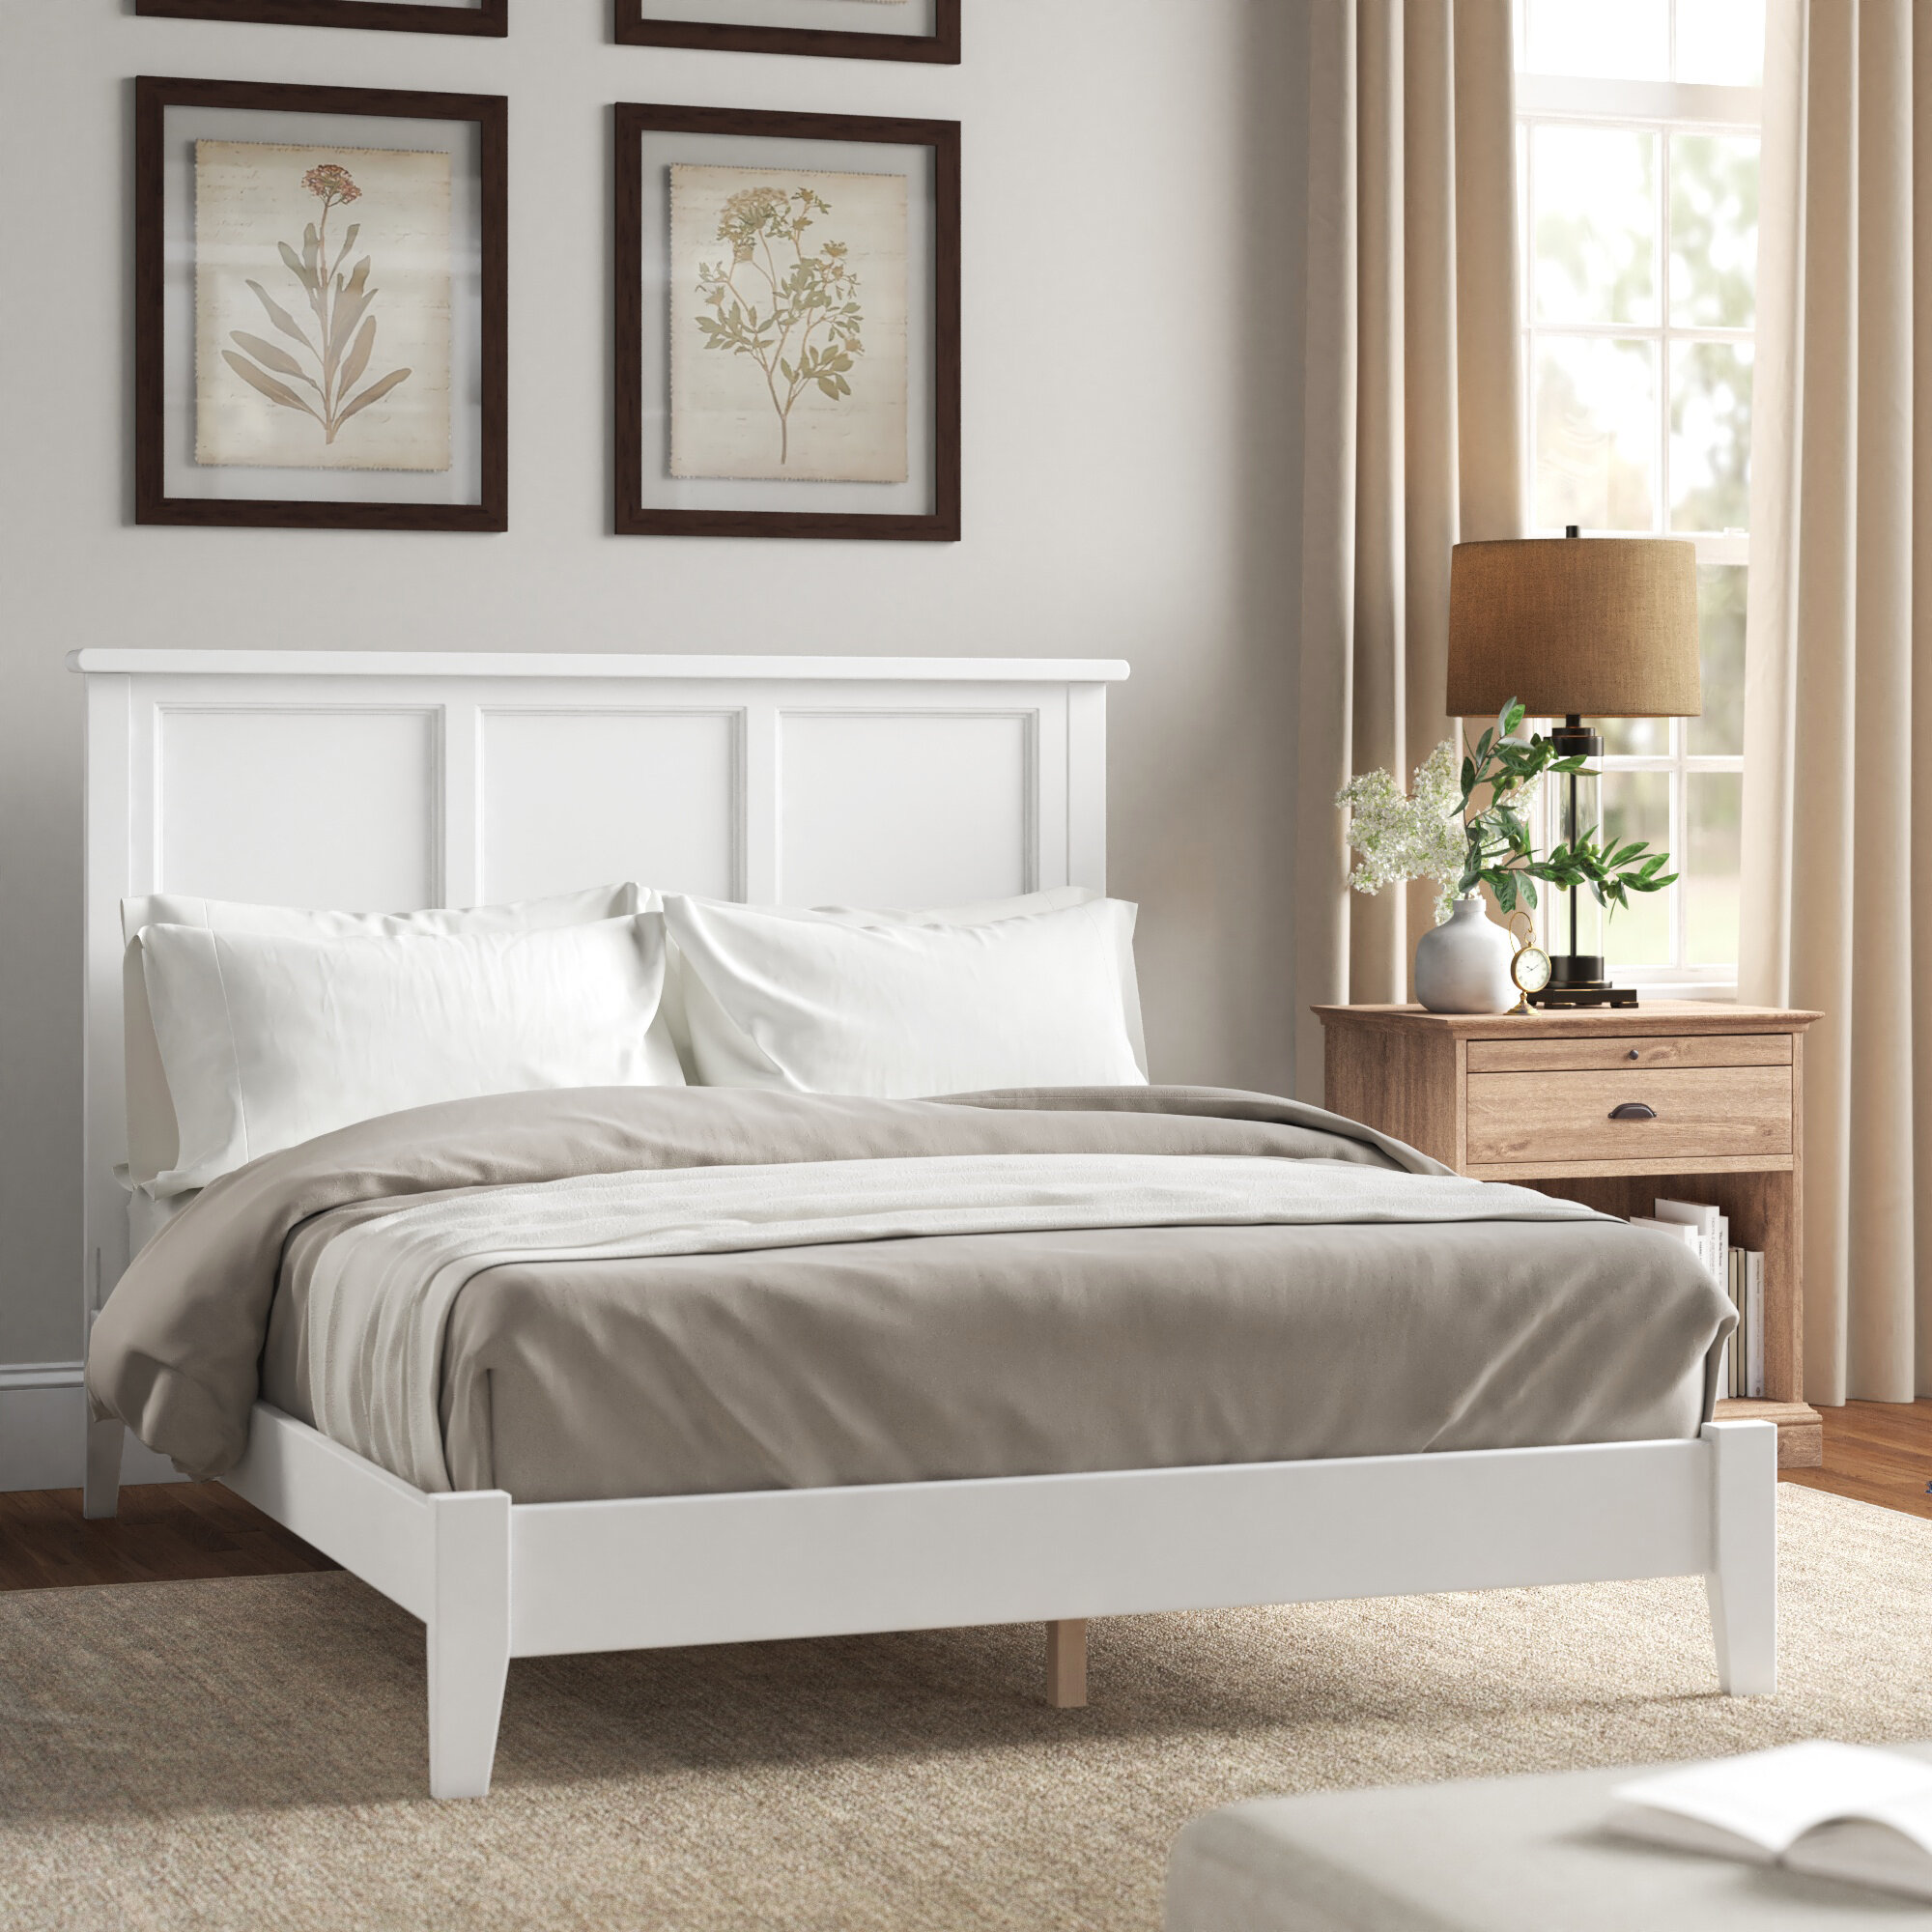 White Beds Frames You Ll Love In 2021 Wayfair